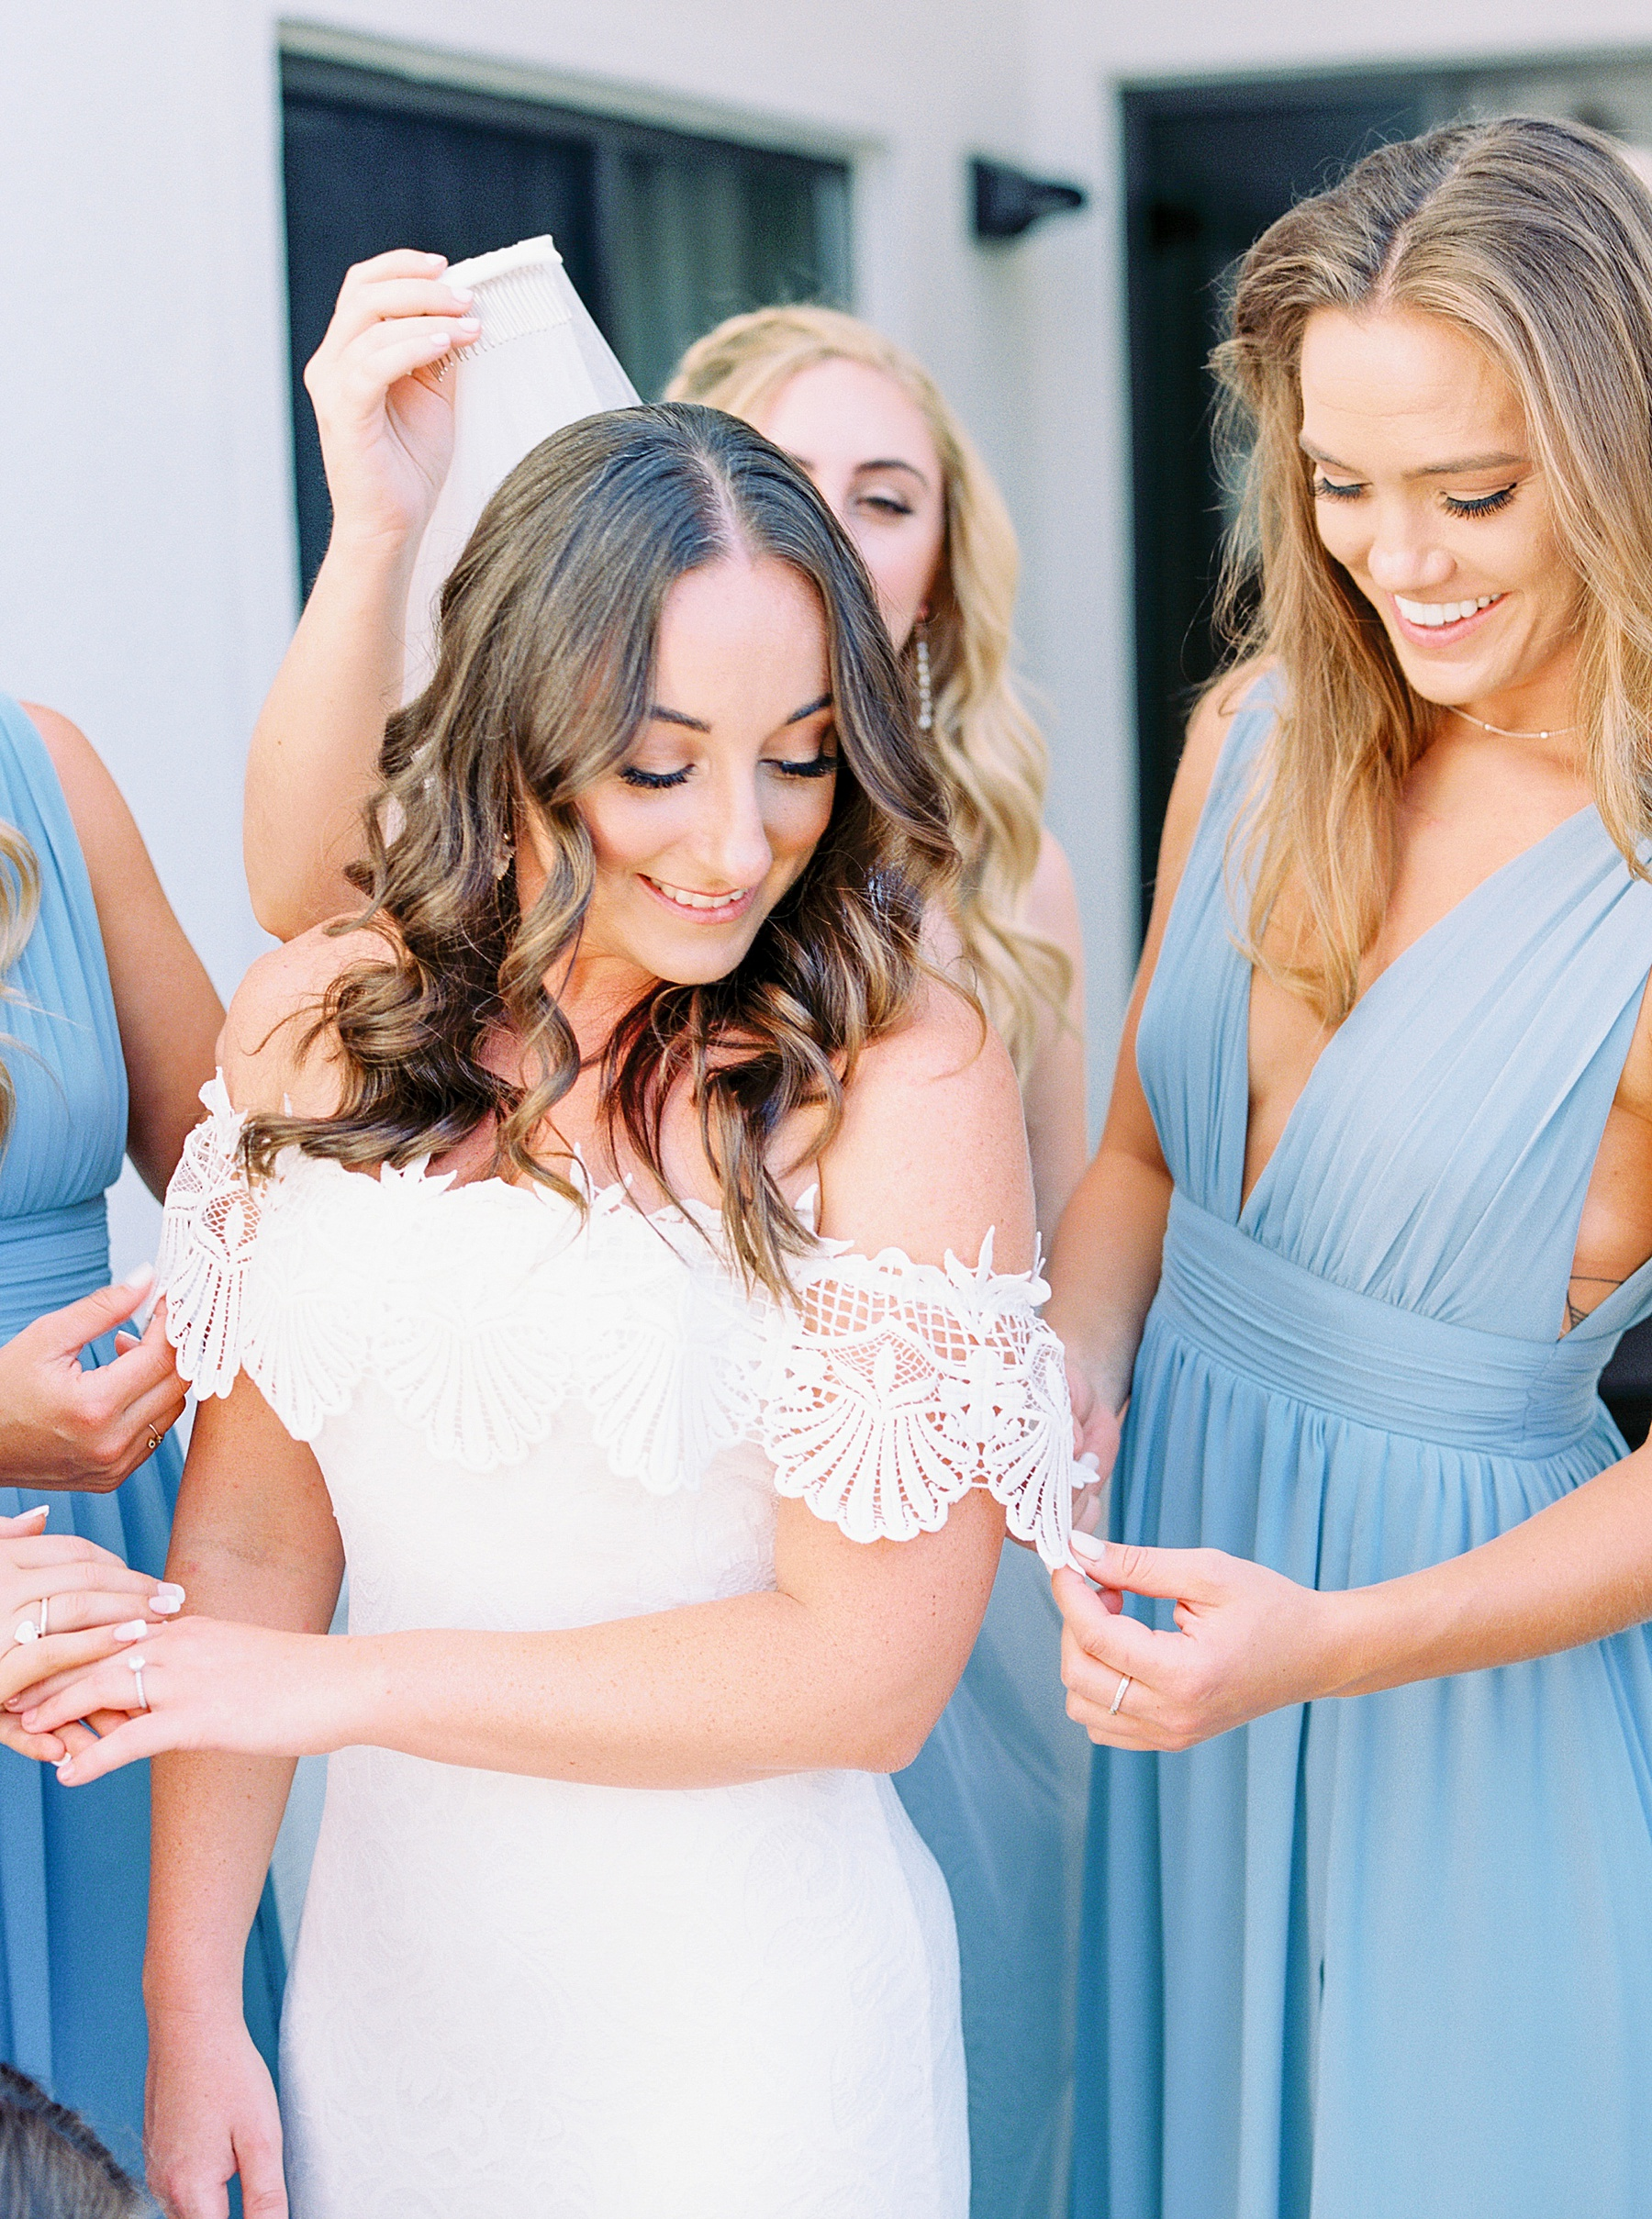 Wente Wedding with A Tropical Color Palette - Ashley & Mike - Featured on Inspired by This - Ashley Baumgartner_0056.jpg